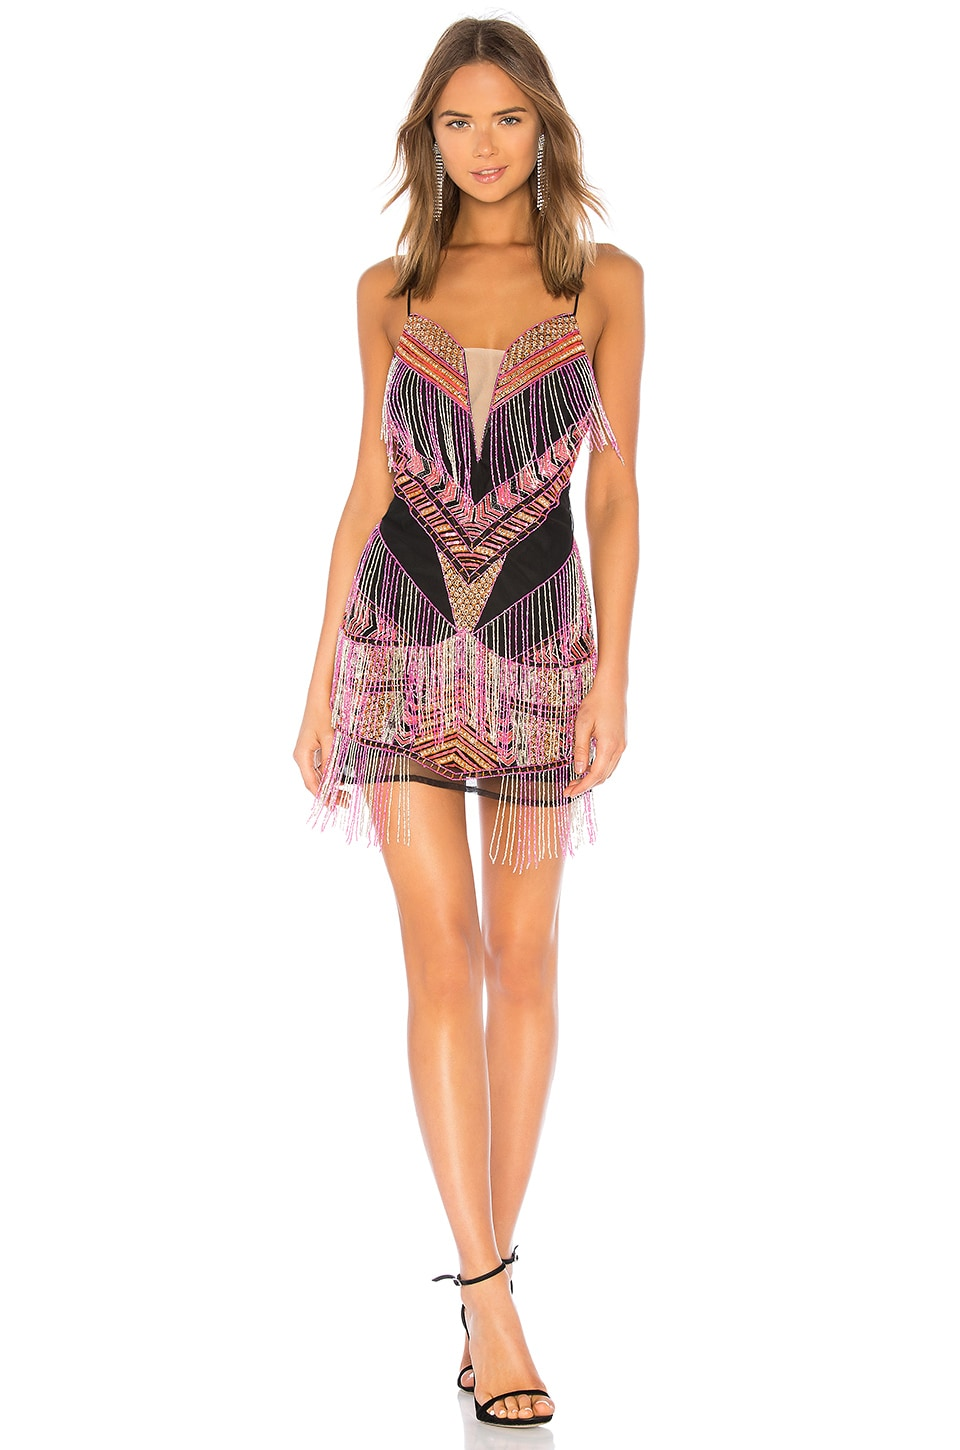 X by NBD Atlantis Mini Dress in Multi Color